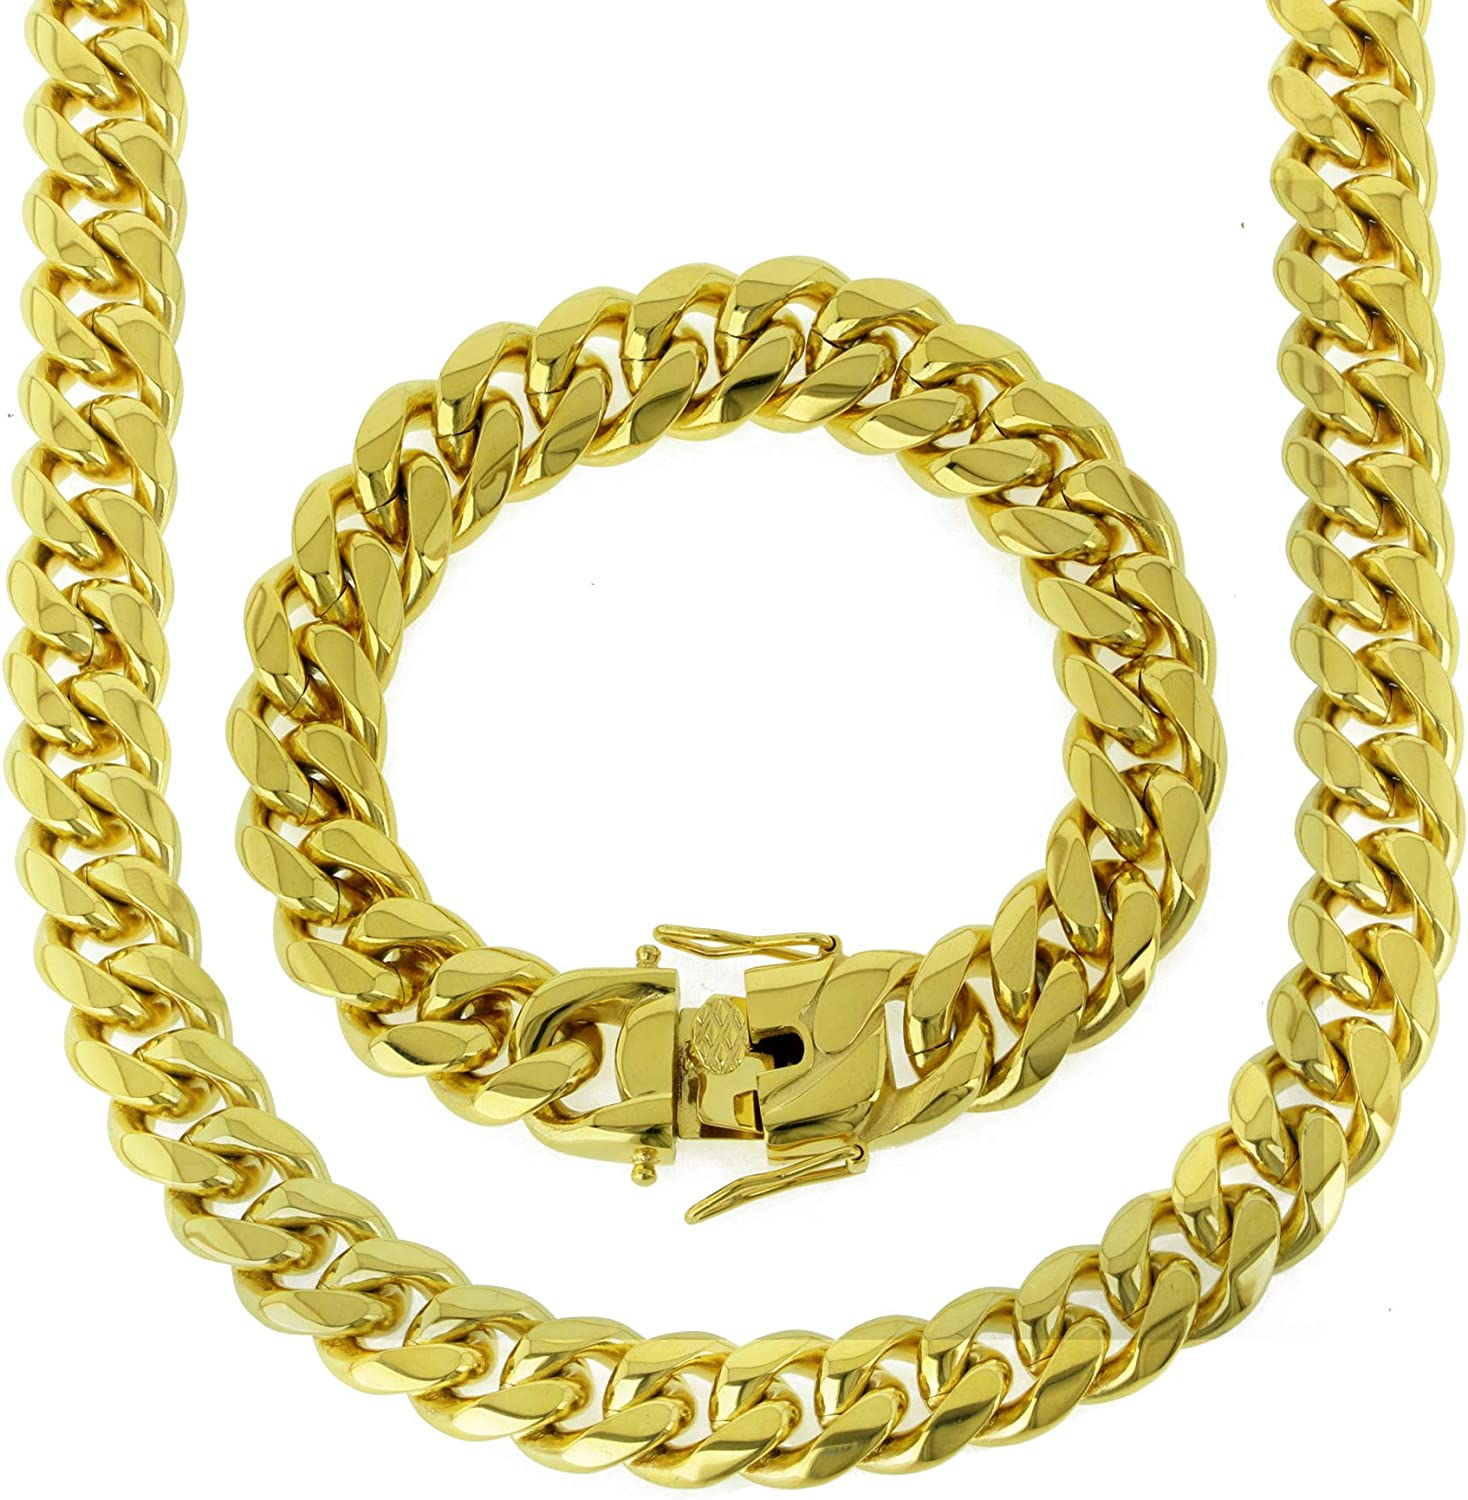 Bling NY Solid 14k Yellow OFFicial Finish 16mm Gold Stainless Steel Virginia Beach Mall